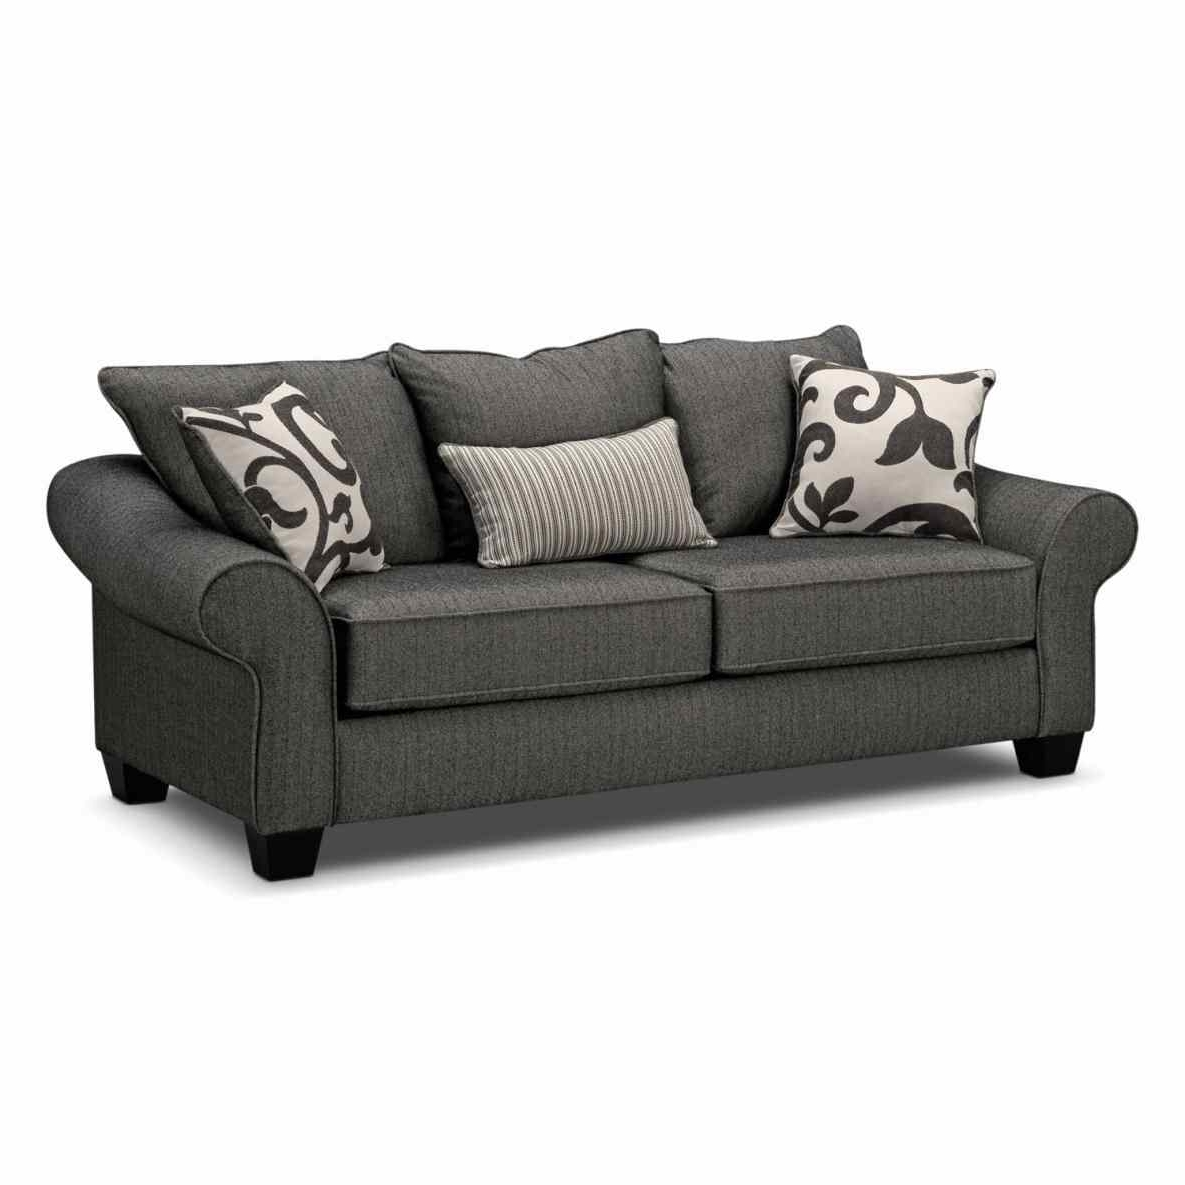 Round Sofas Intended For Popular Couch : Bed Bedua Sofas Semi Circular Half Curved Wedge Semi Small (View 11 of 20)